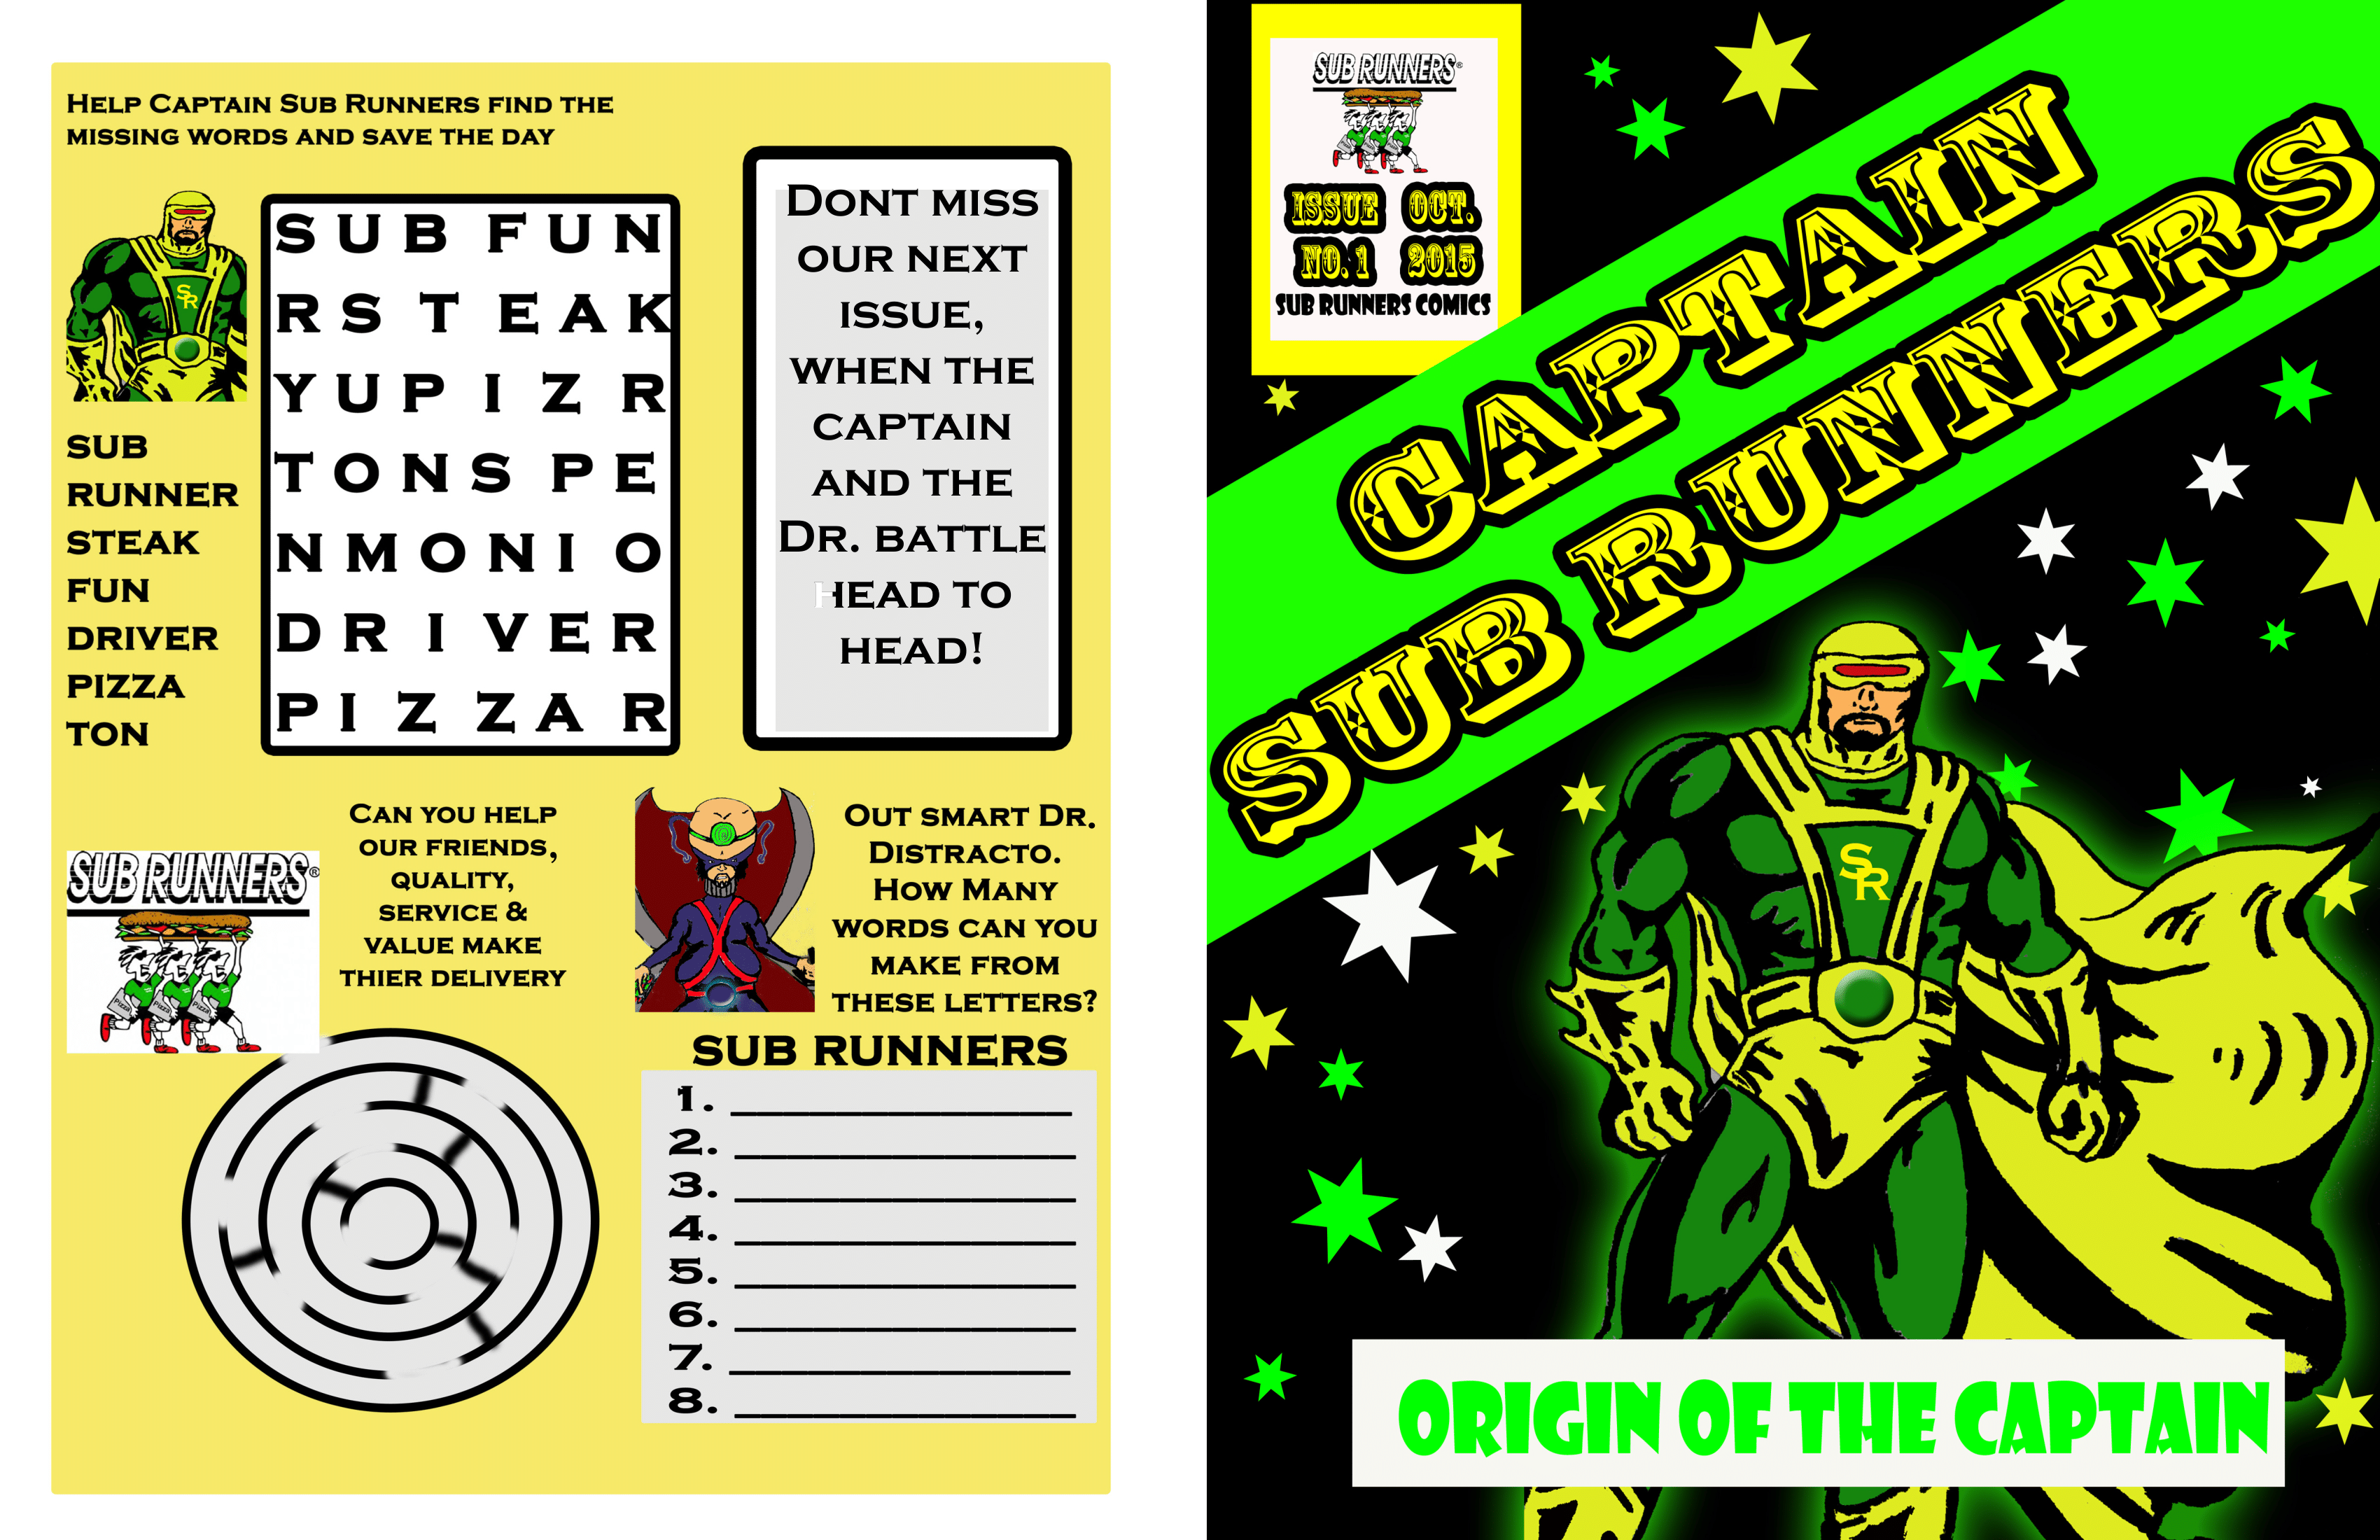 CAPTAIN SUB RUNNERS - Origin of the Captian